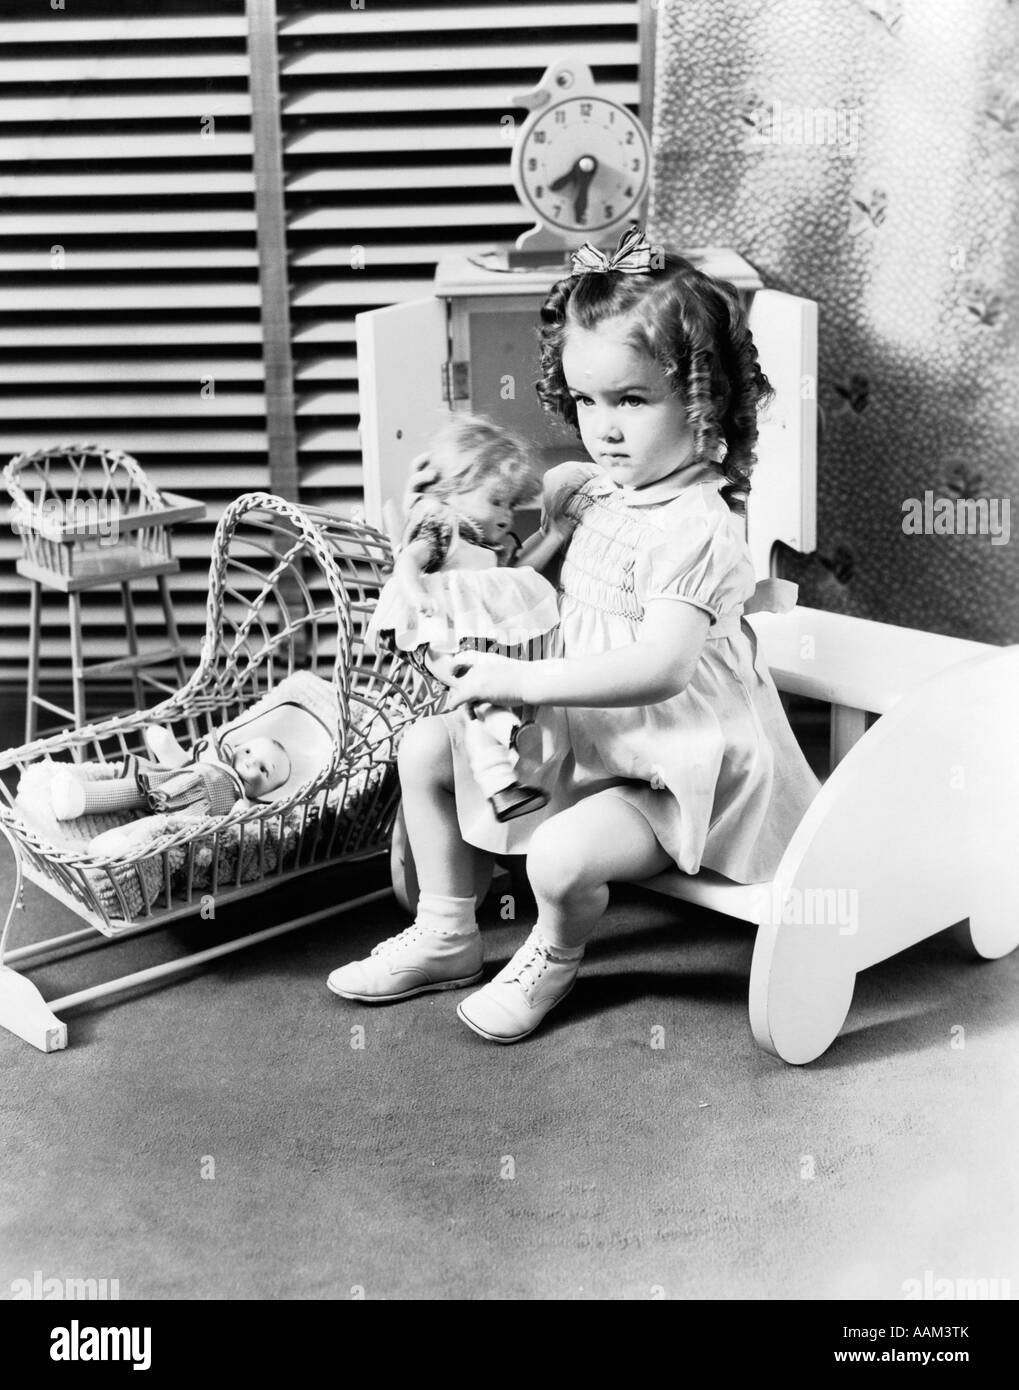 Black child sitting in chair - 1940s 3 Year Old Girl Sitting Holding Baby Doll Toy Cradle Toy High Chair Toy Clock Venetian Blinds